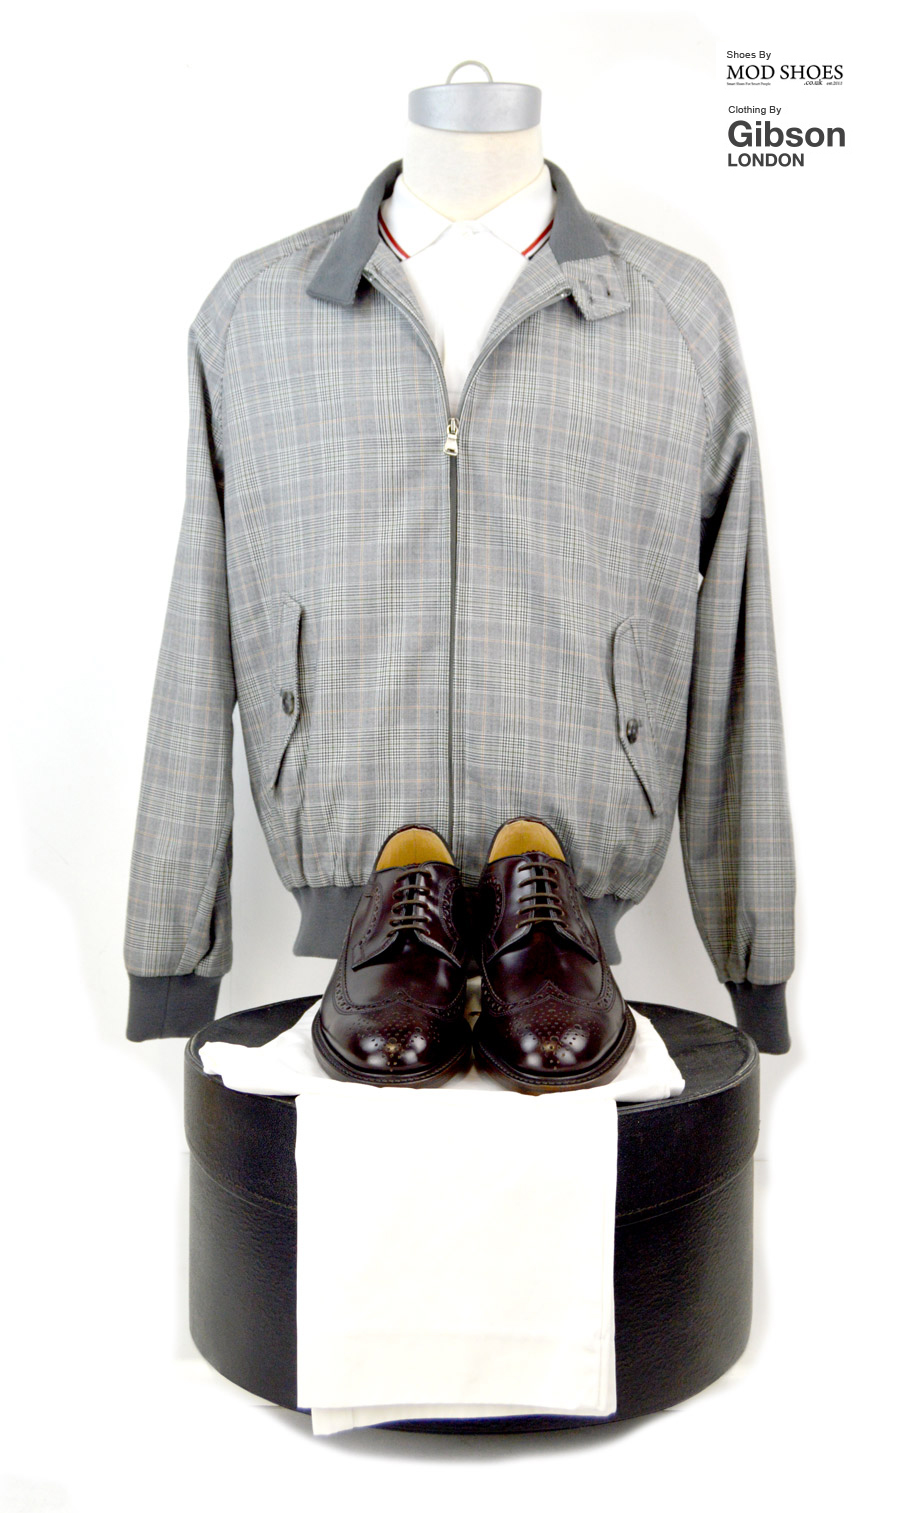 modshoes-oxblood-royals-with-prince-of-wales-harrington-jacket-from-Gibson-clothing